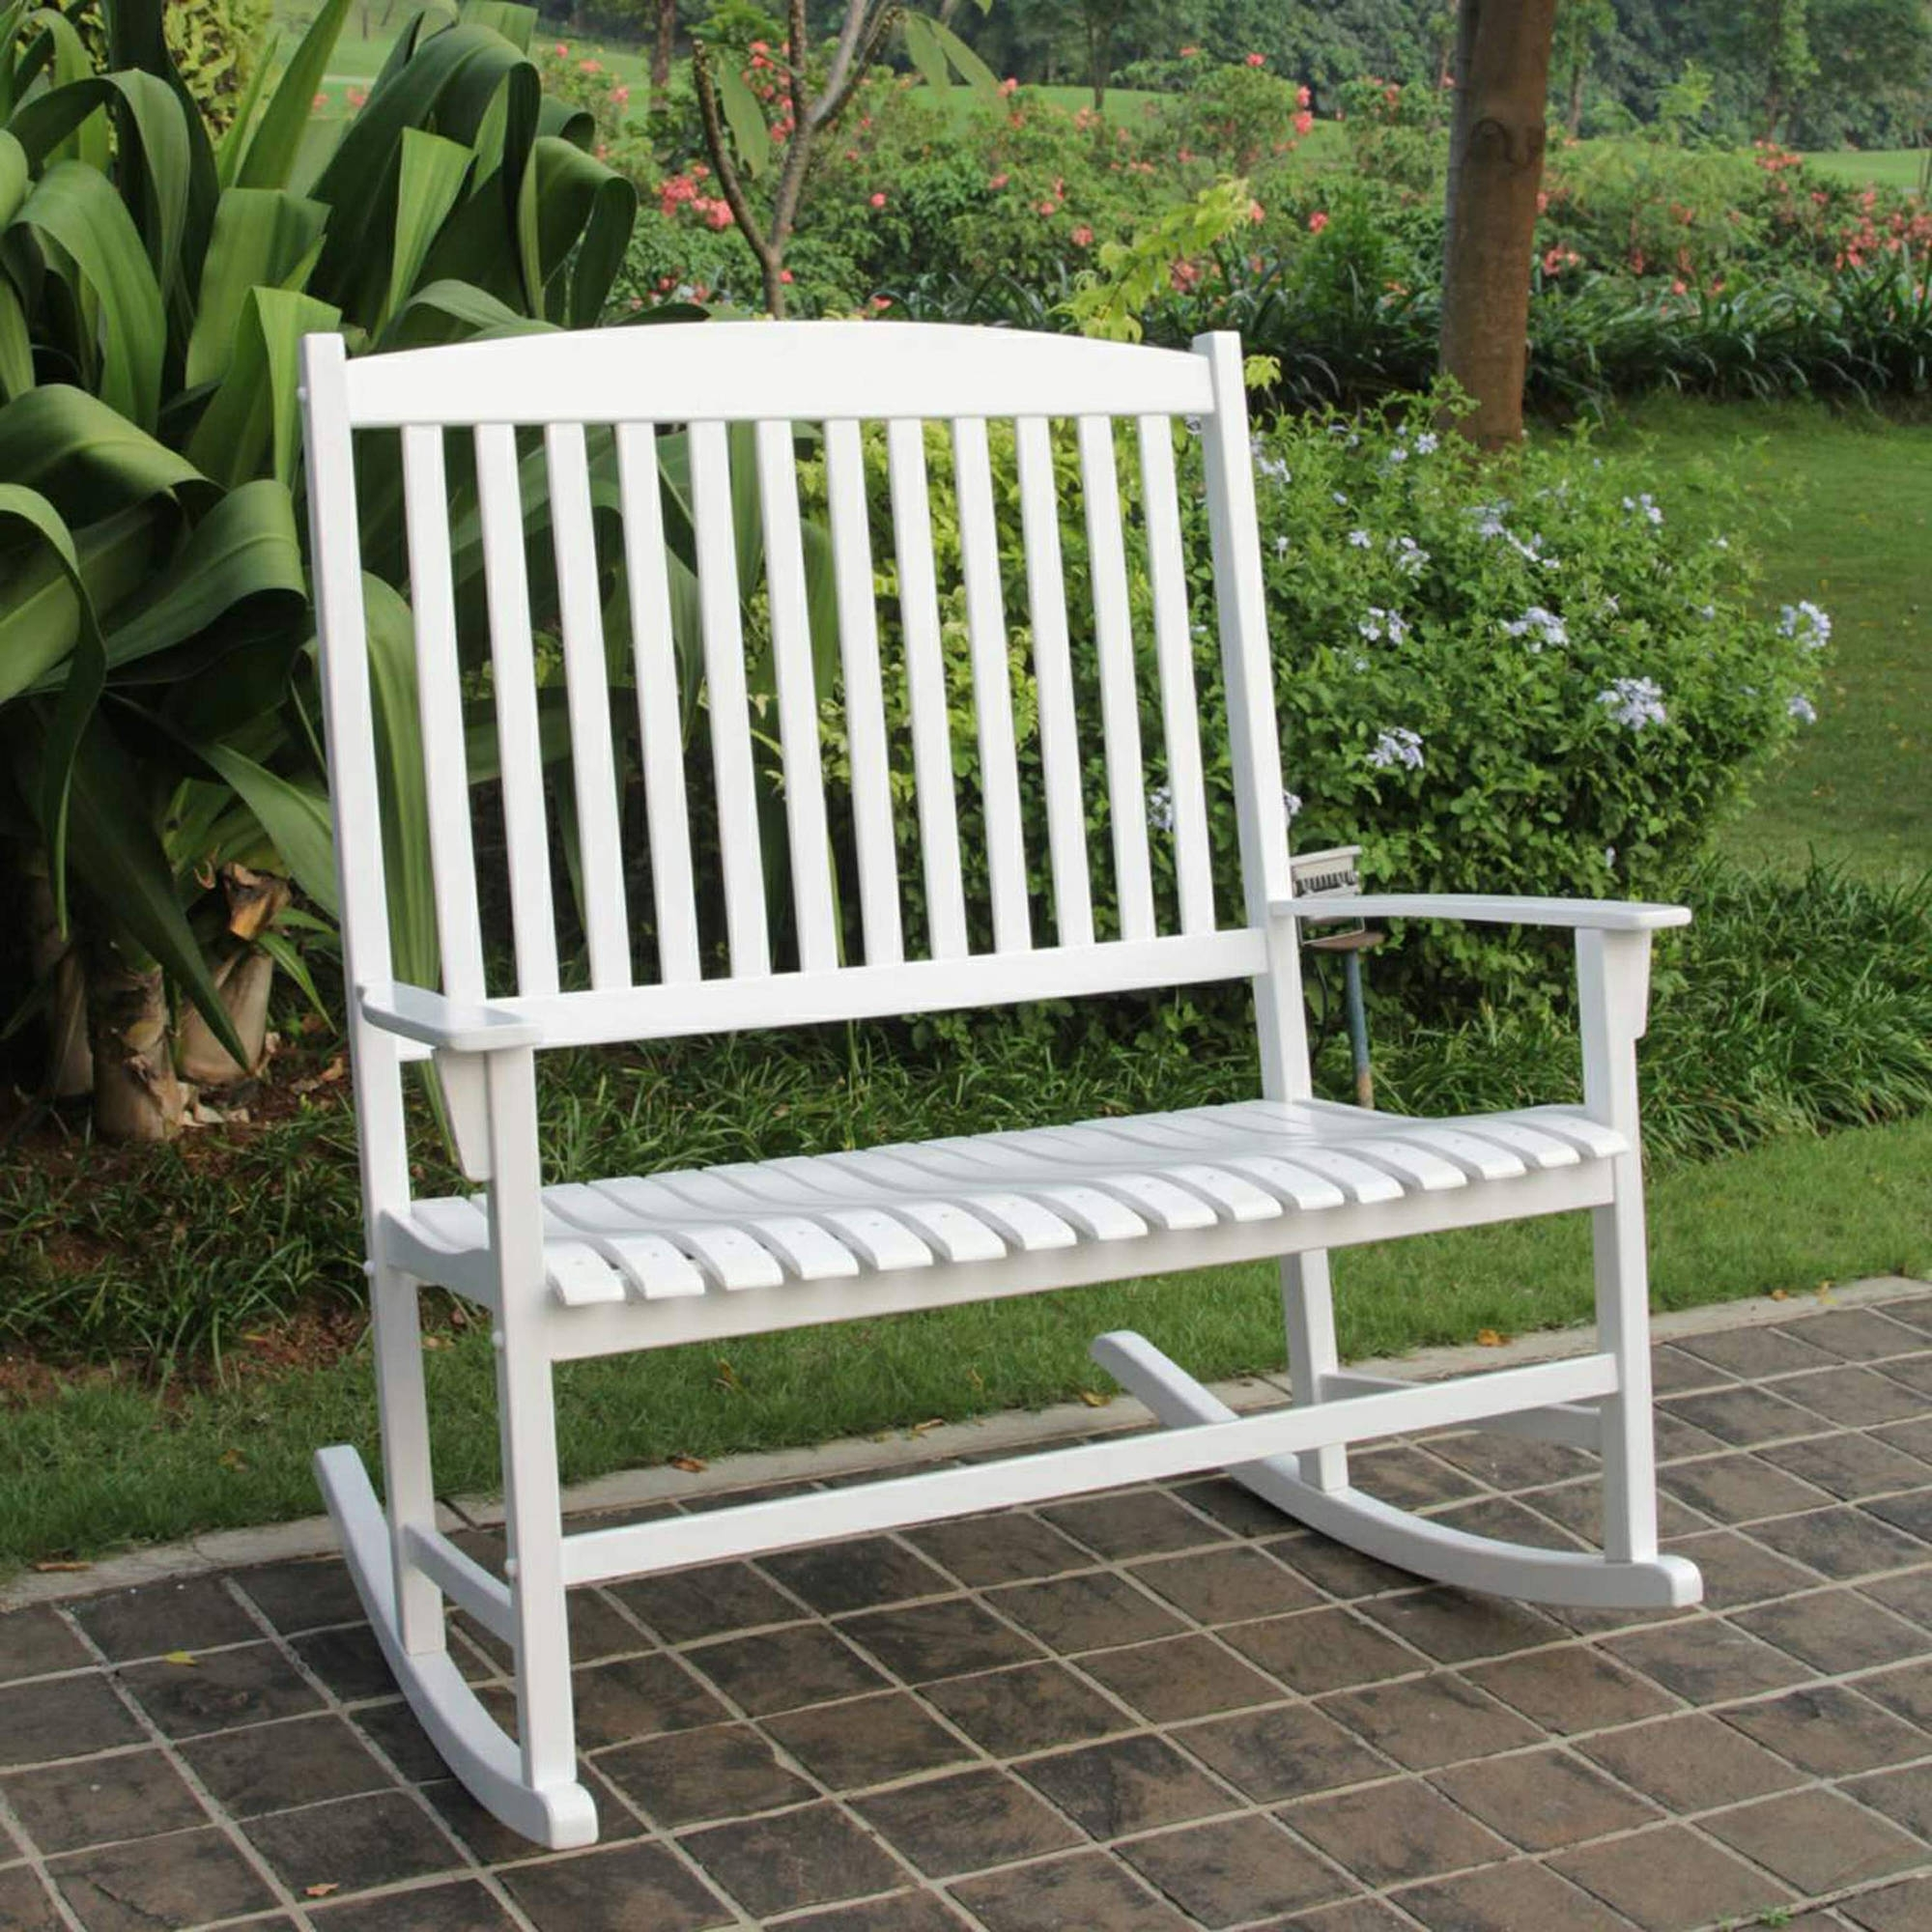 Fashionable White Patio Rocking Chairs In Patio Loveseat White Hardwood Outdoor Rocking Chair For  (View 7 of 20)